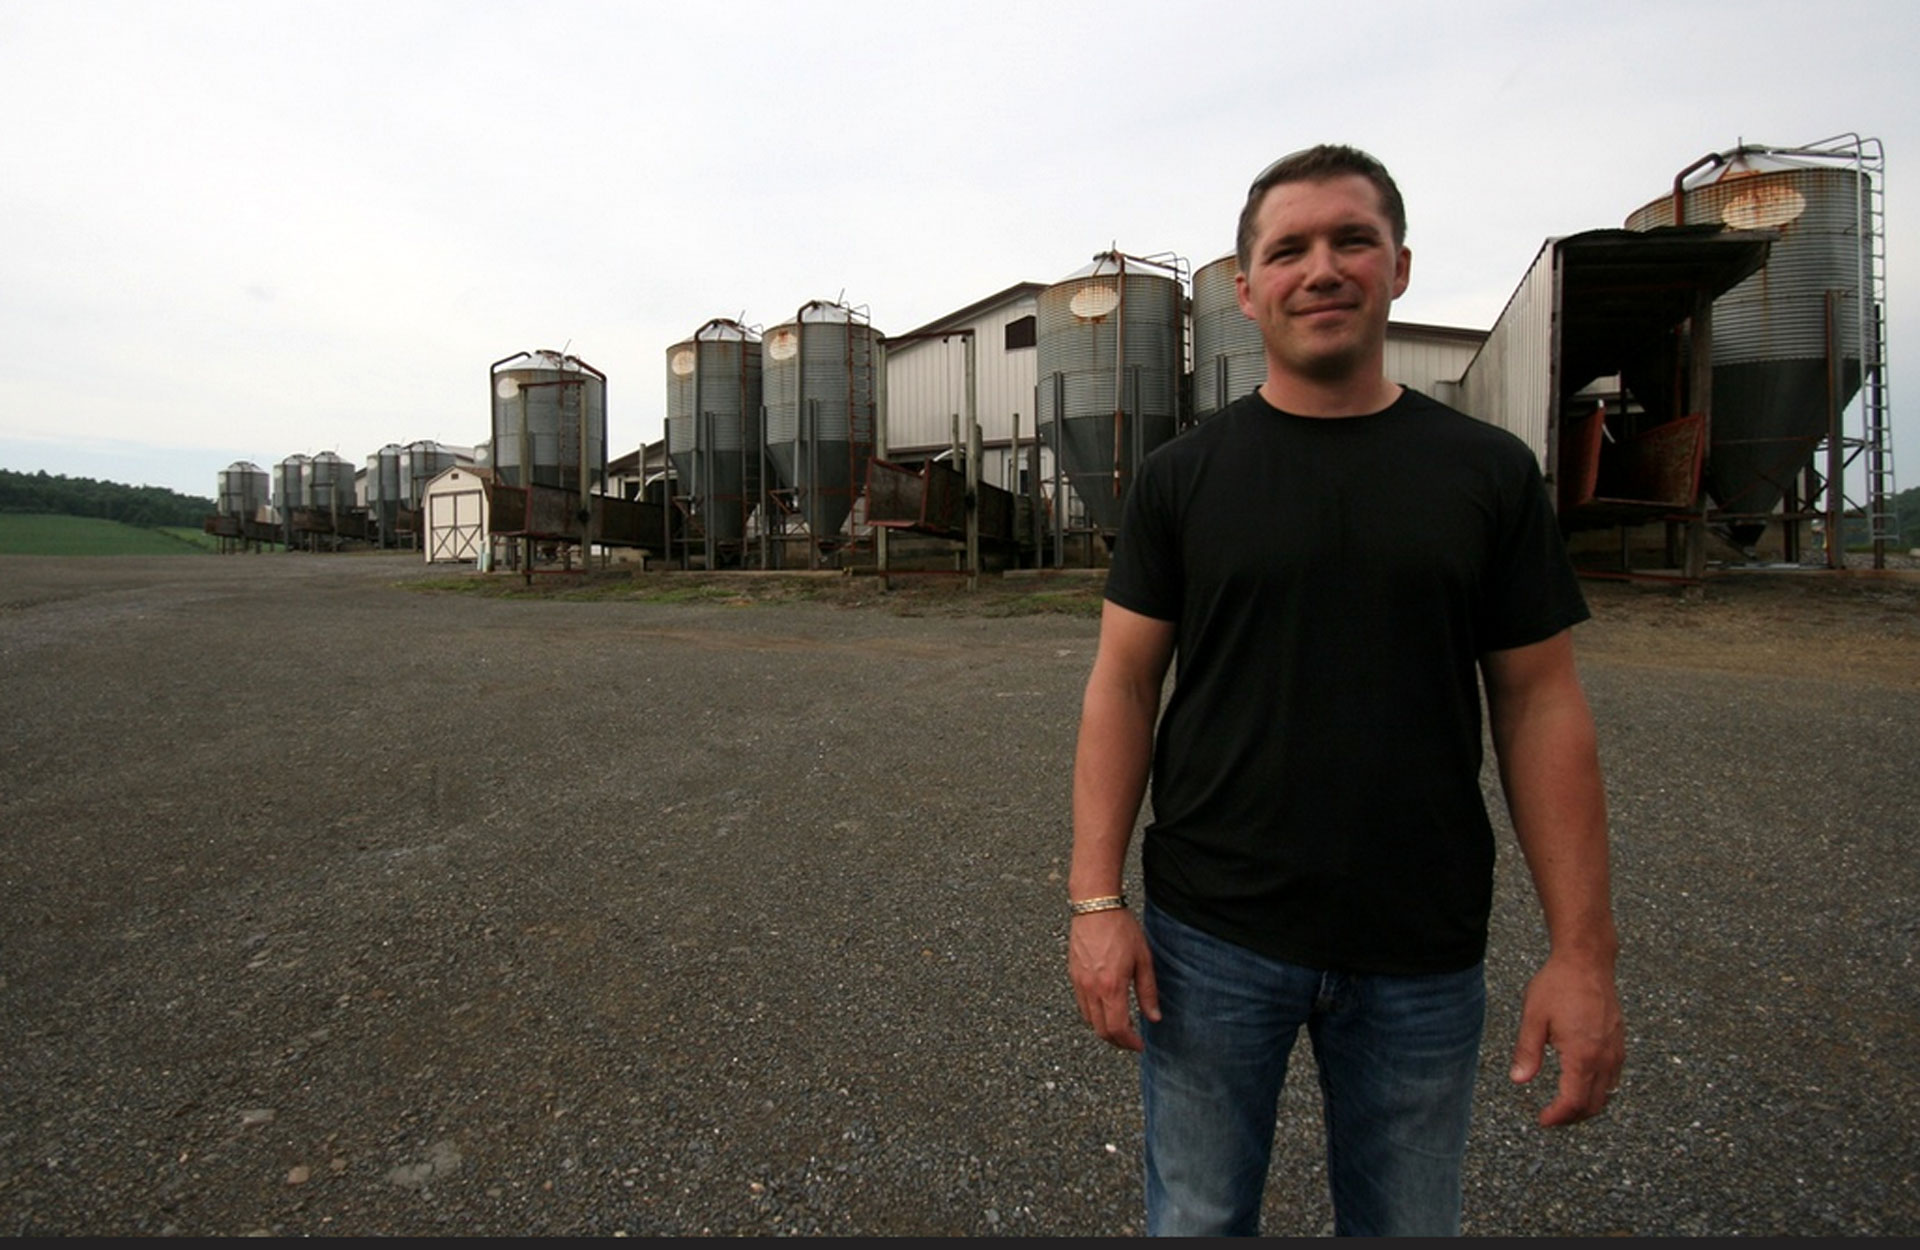 Dennis Brubaker, co-owner of Ideal Family Farms, at his pig farm in Beavertown, Pennsylvania.